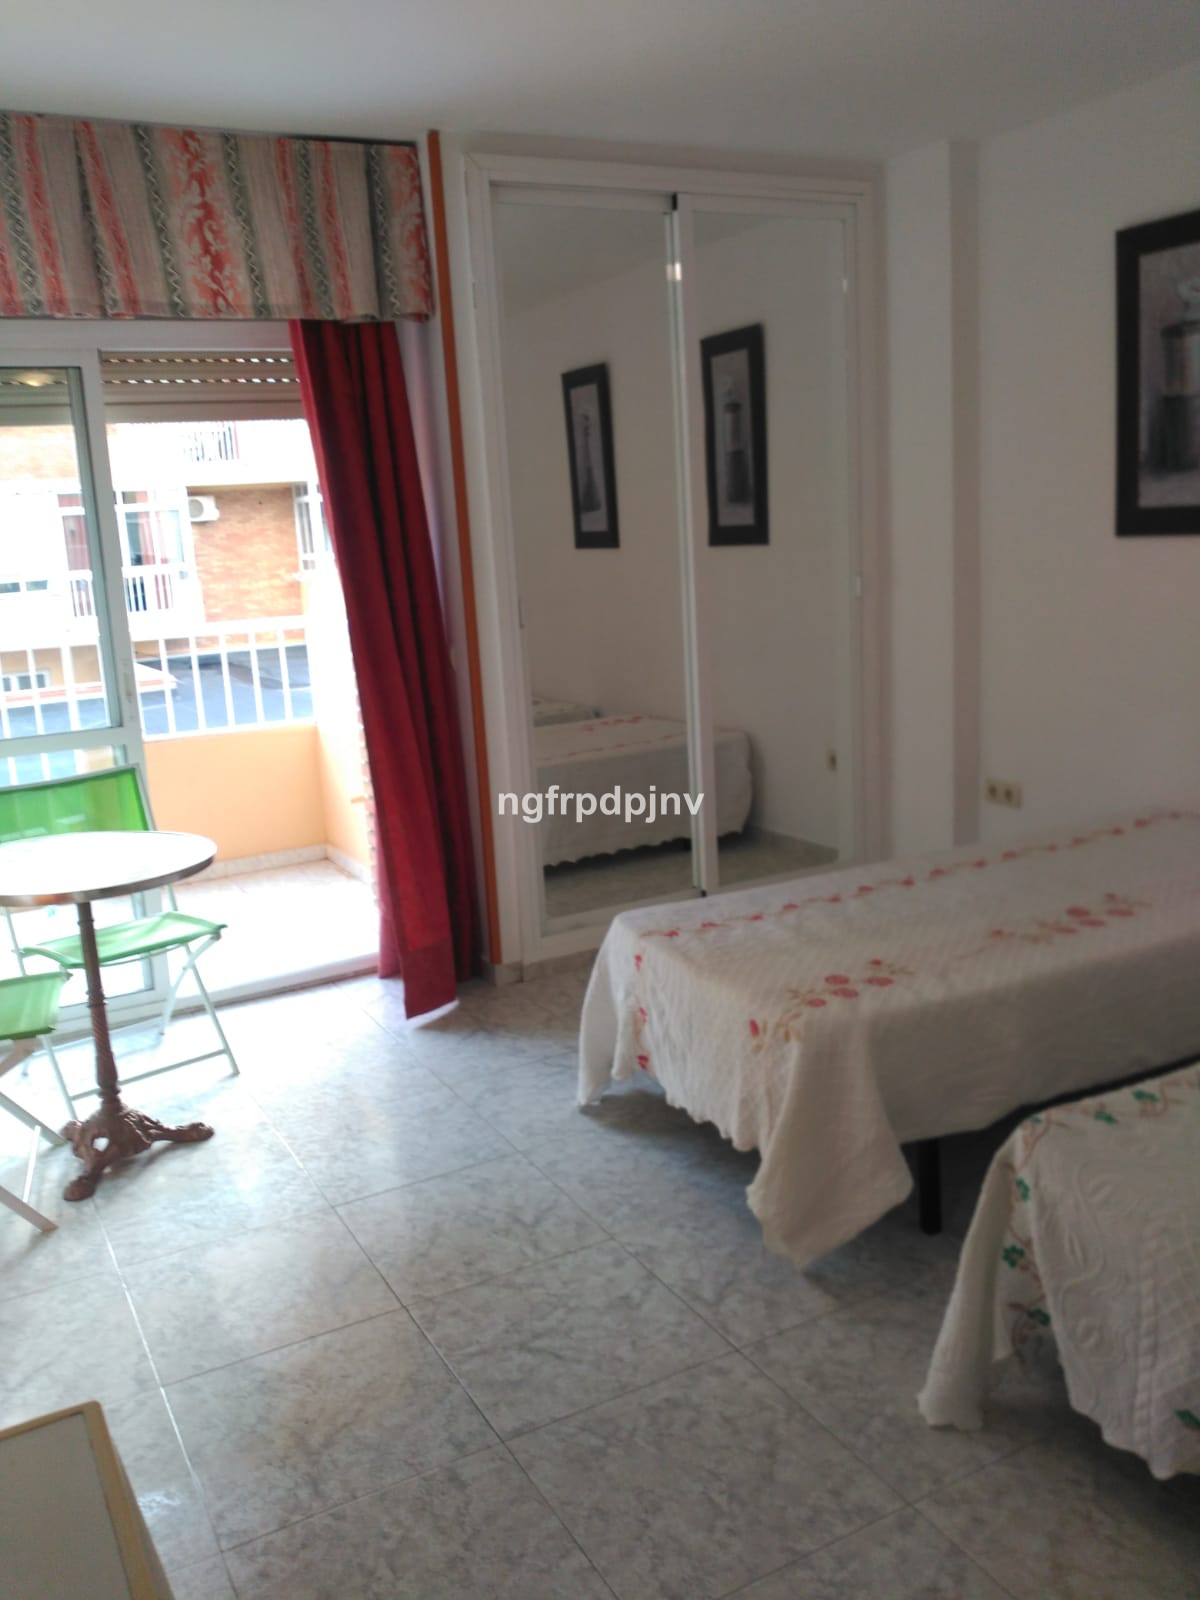 Middle Floor Studio, Benalmadena Costa, Costa del Sol. Built 30 m², Terrace 3 m².  Setting : Town, C, Spain